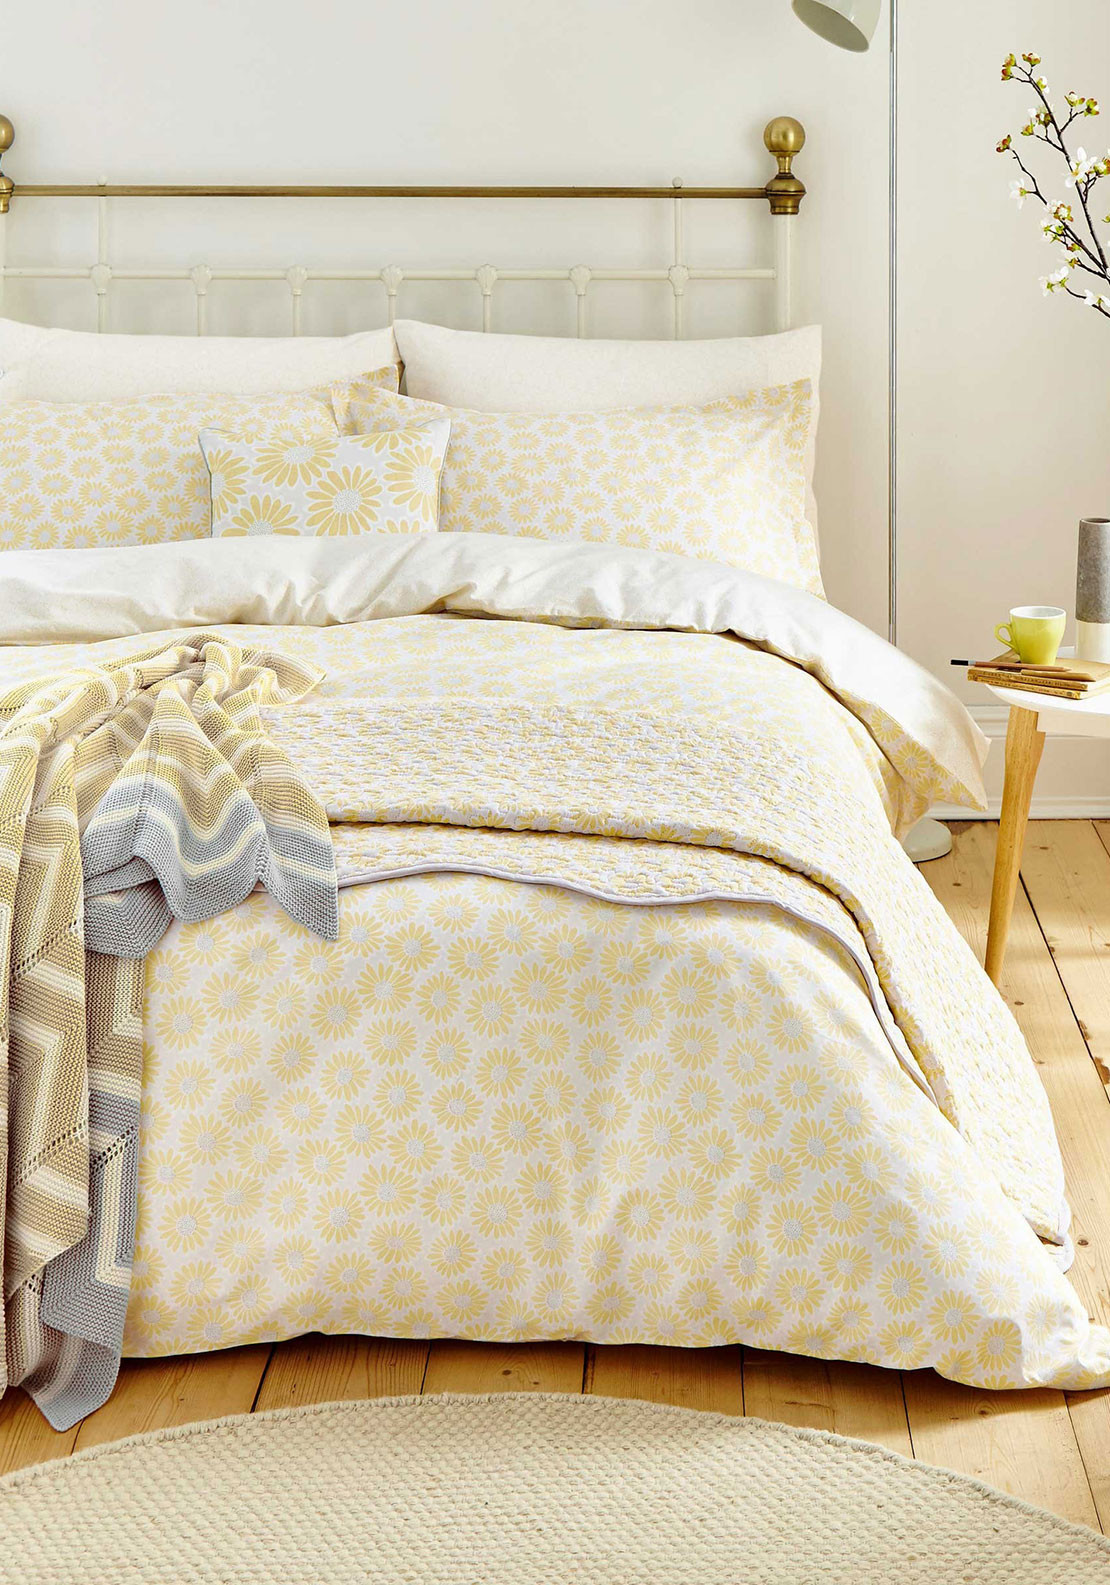 Helena Springfield Daisie Duvet Cover Set, Yellow